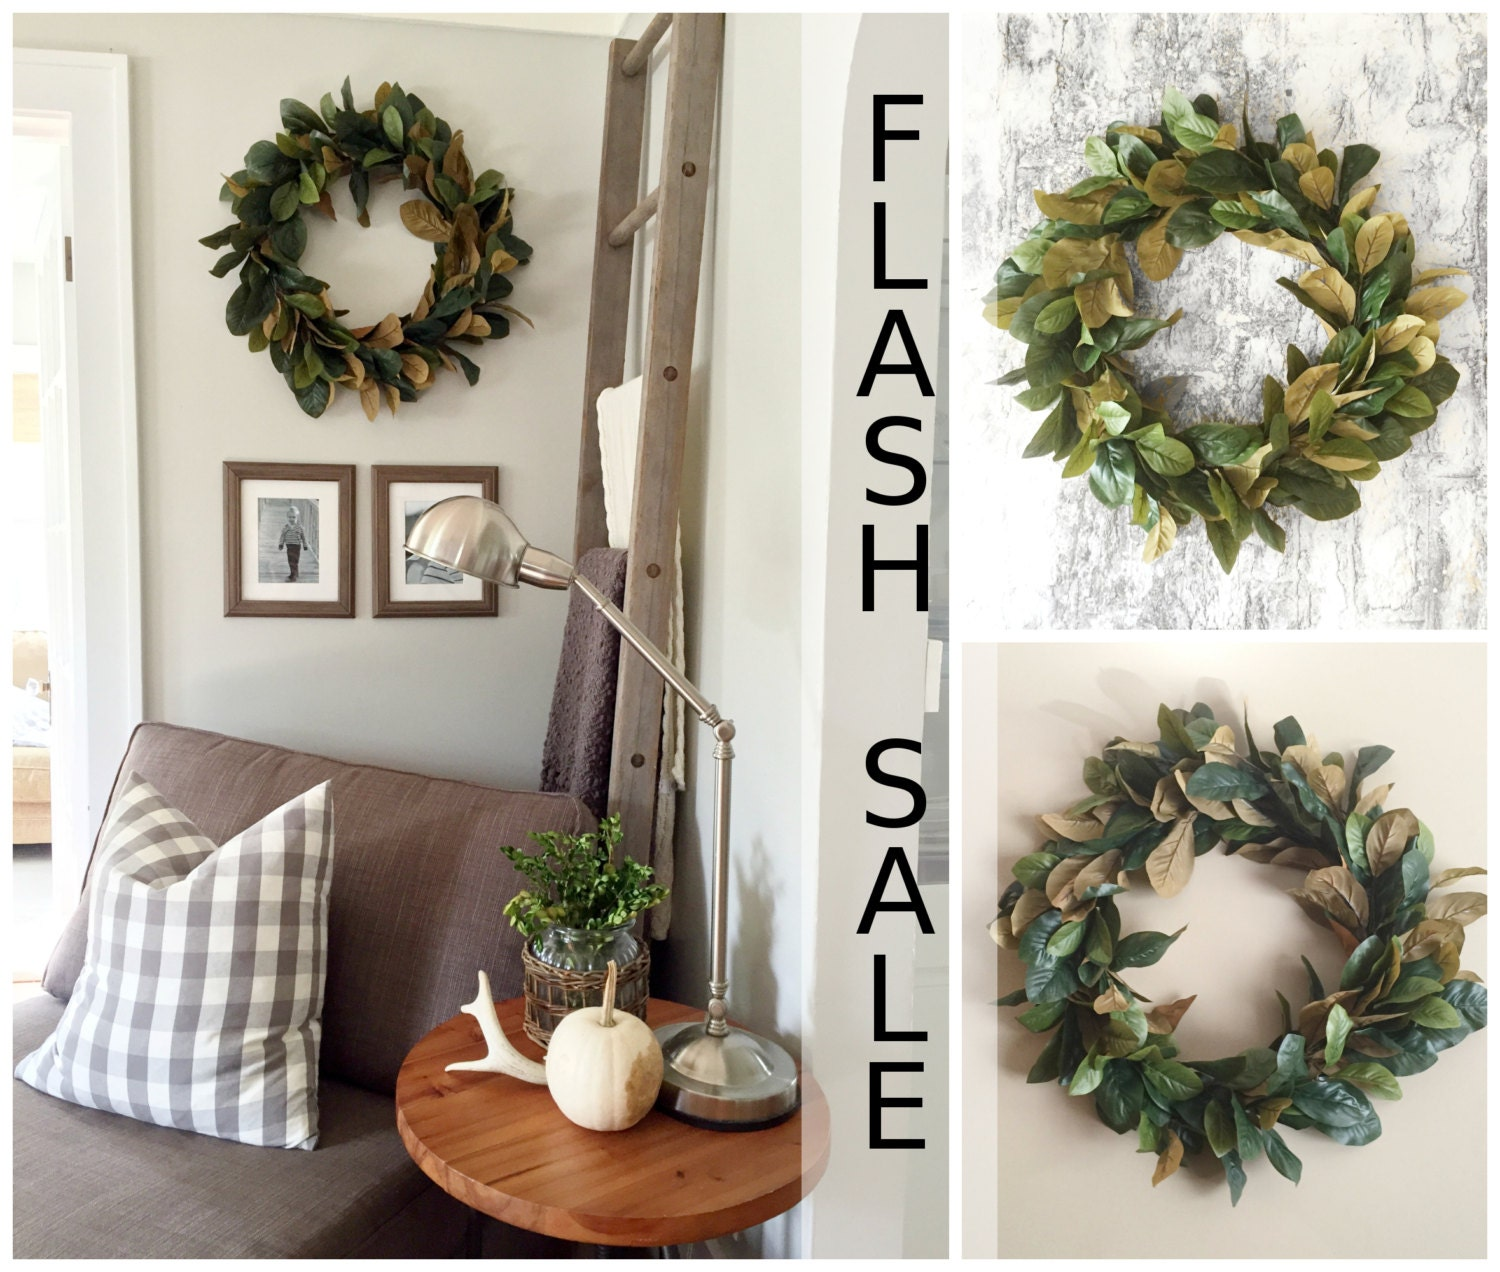 Flash sale magnolia wreath home decor farmhouse wreath for Home decor items on sale